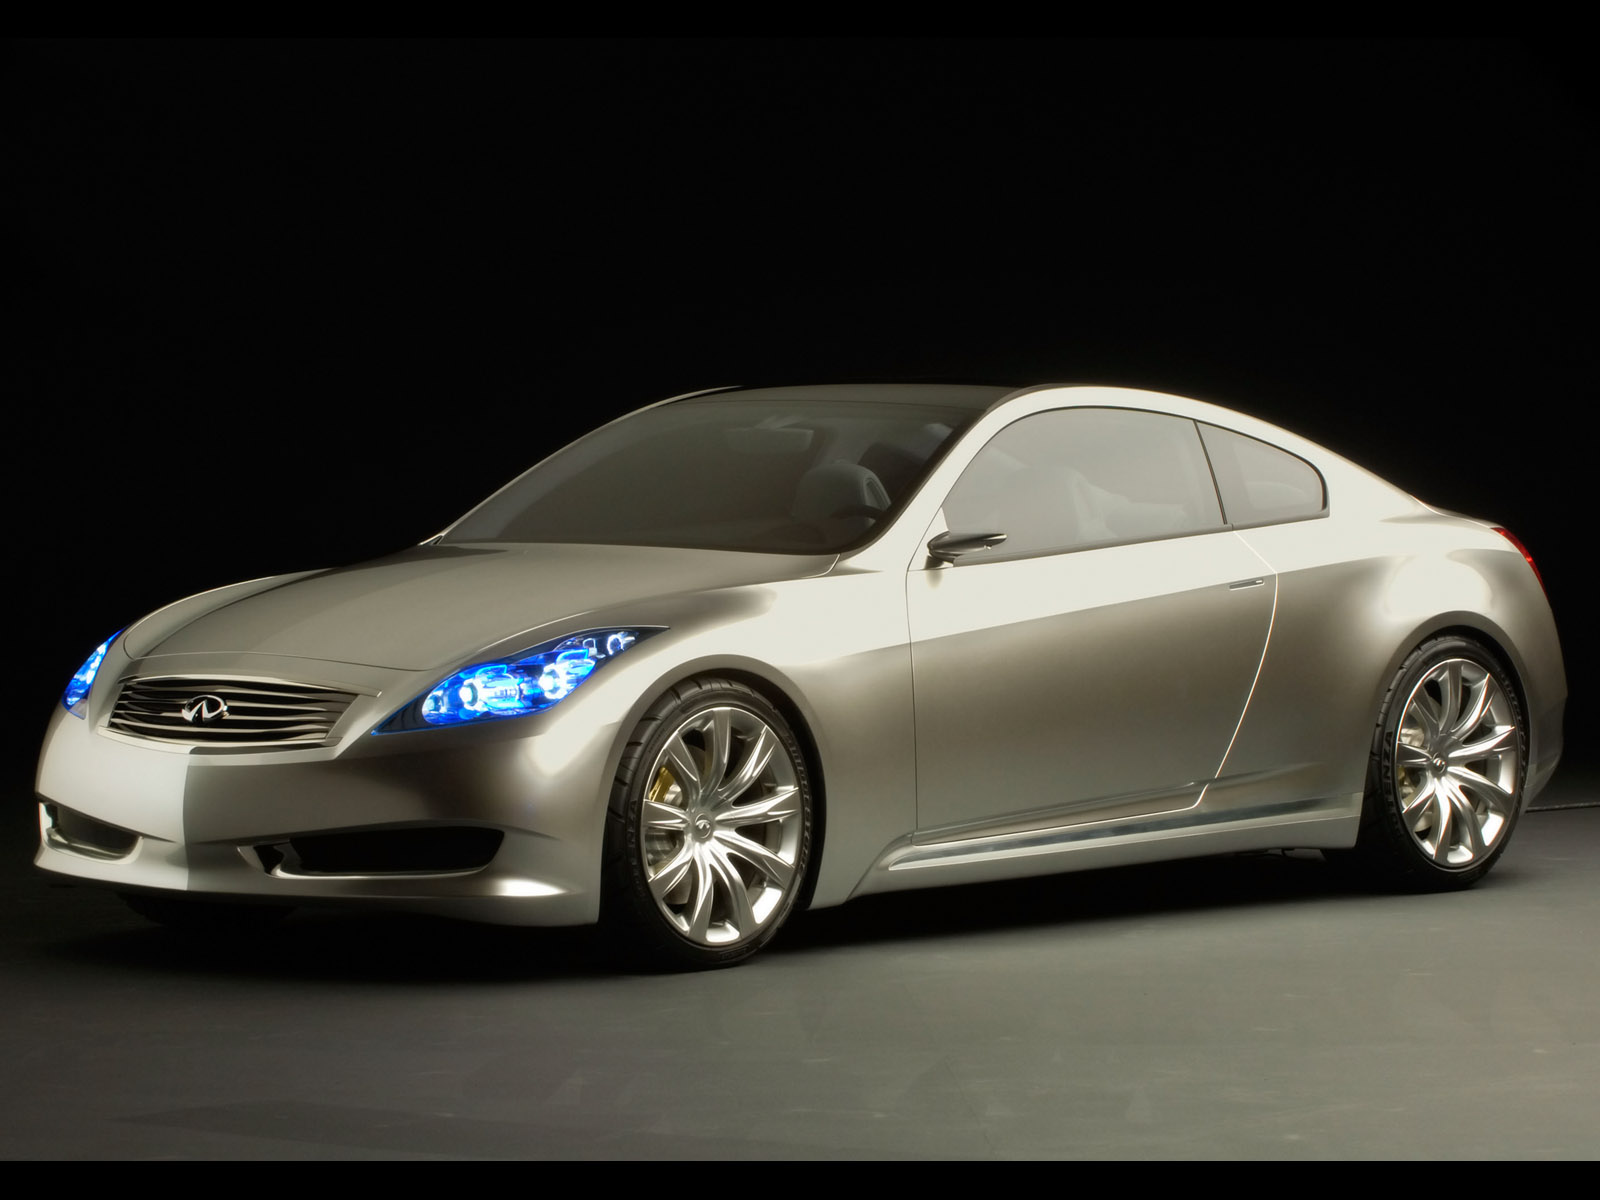 2007 Infiniti G35 Coupe on Does A Car